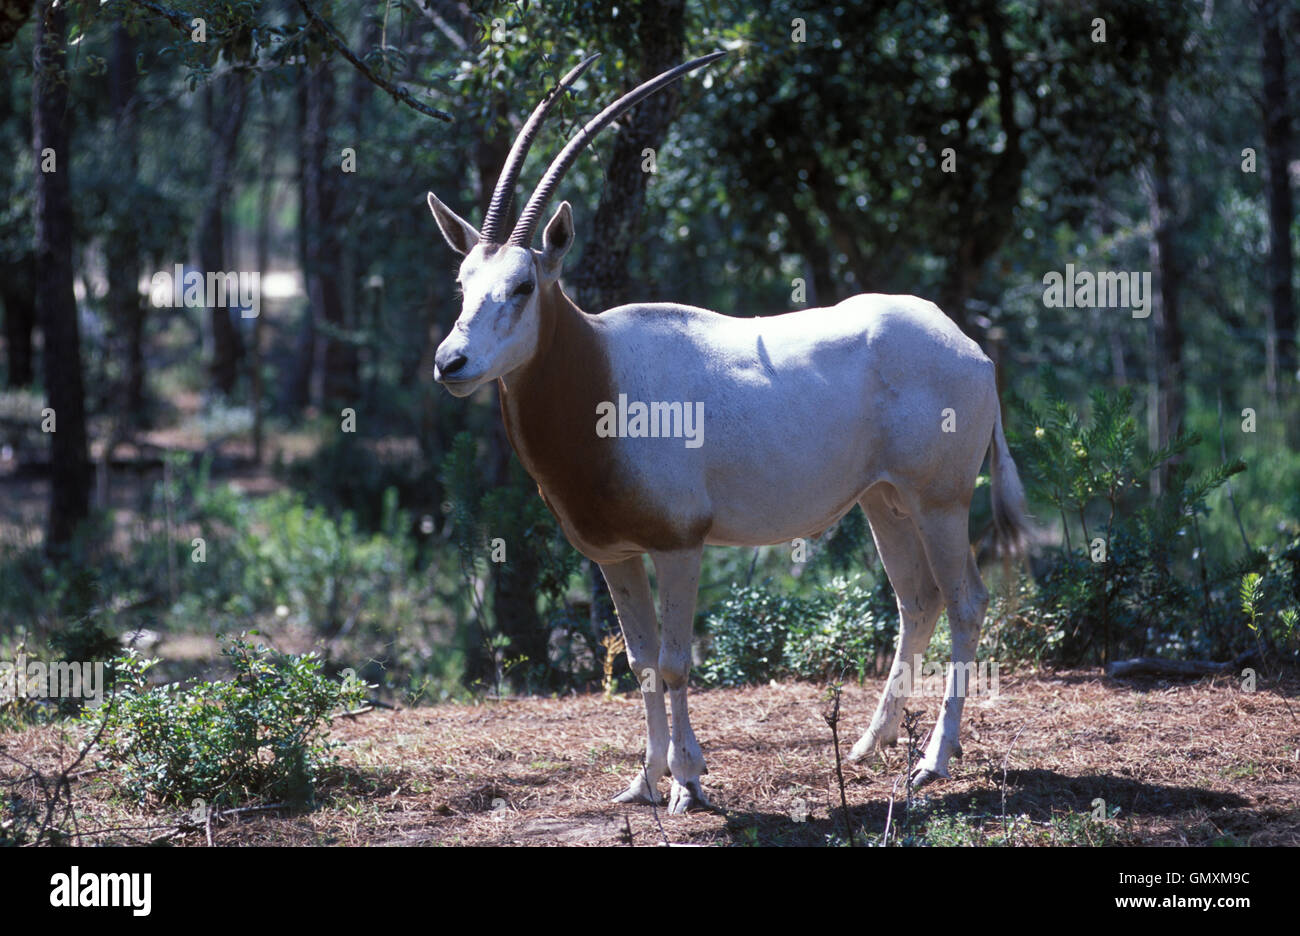 Scimitar Oryx or Scimitar-horned Oryx, Oryx dammah. This species is extinct in the wild. Zoological Park. Portugal - Stock Image